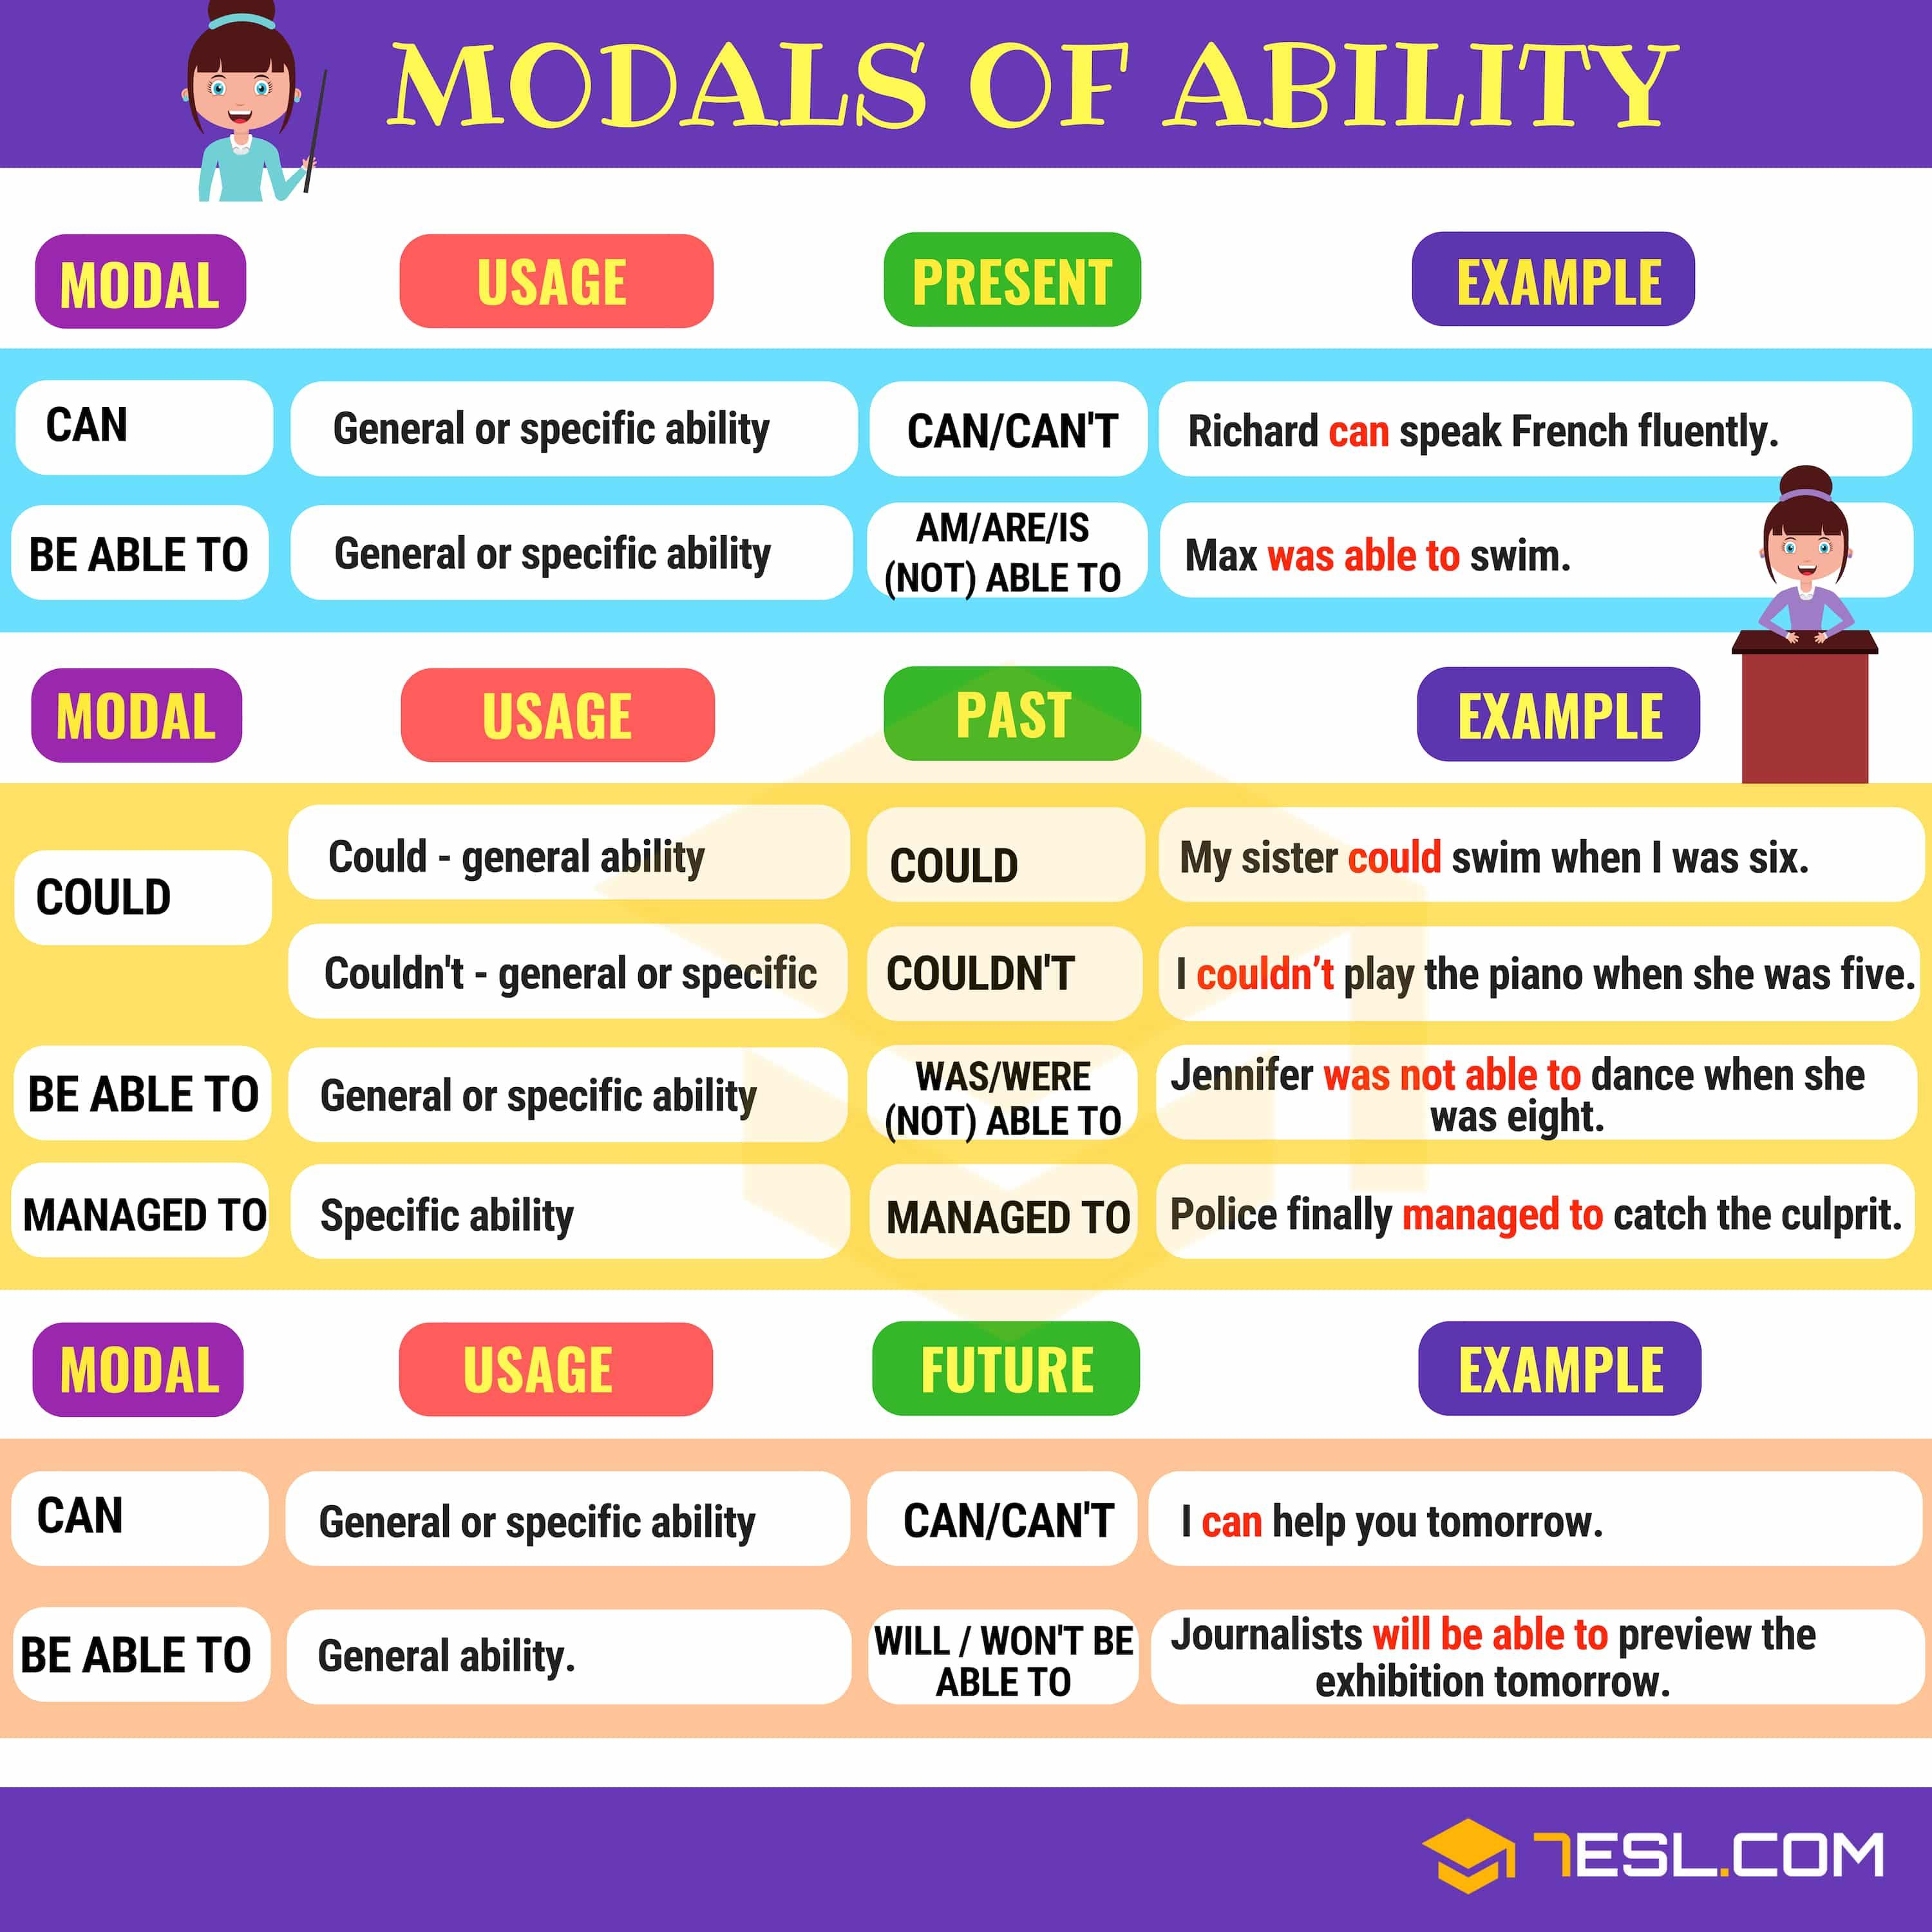 Modals Of Ability Modal Verbs To Express Ability 7esl English Verbs Learn English Learn English Words [ 3000 x 3000 Pixel ]